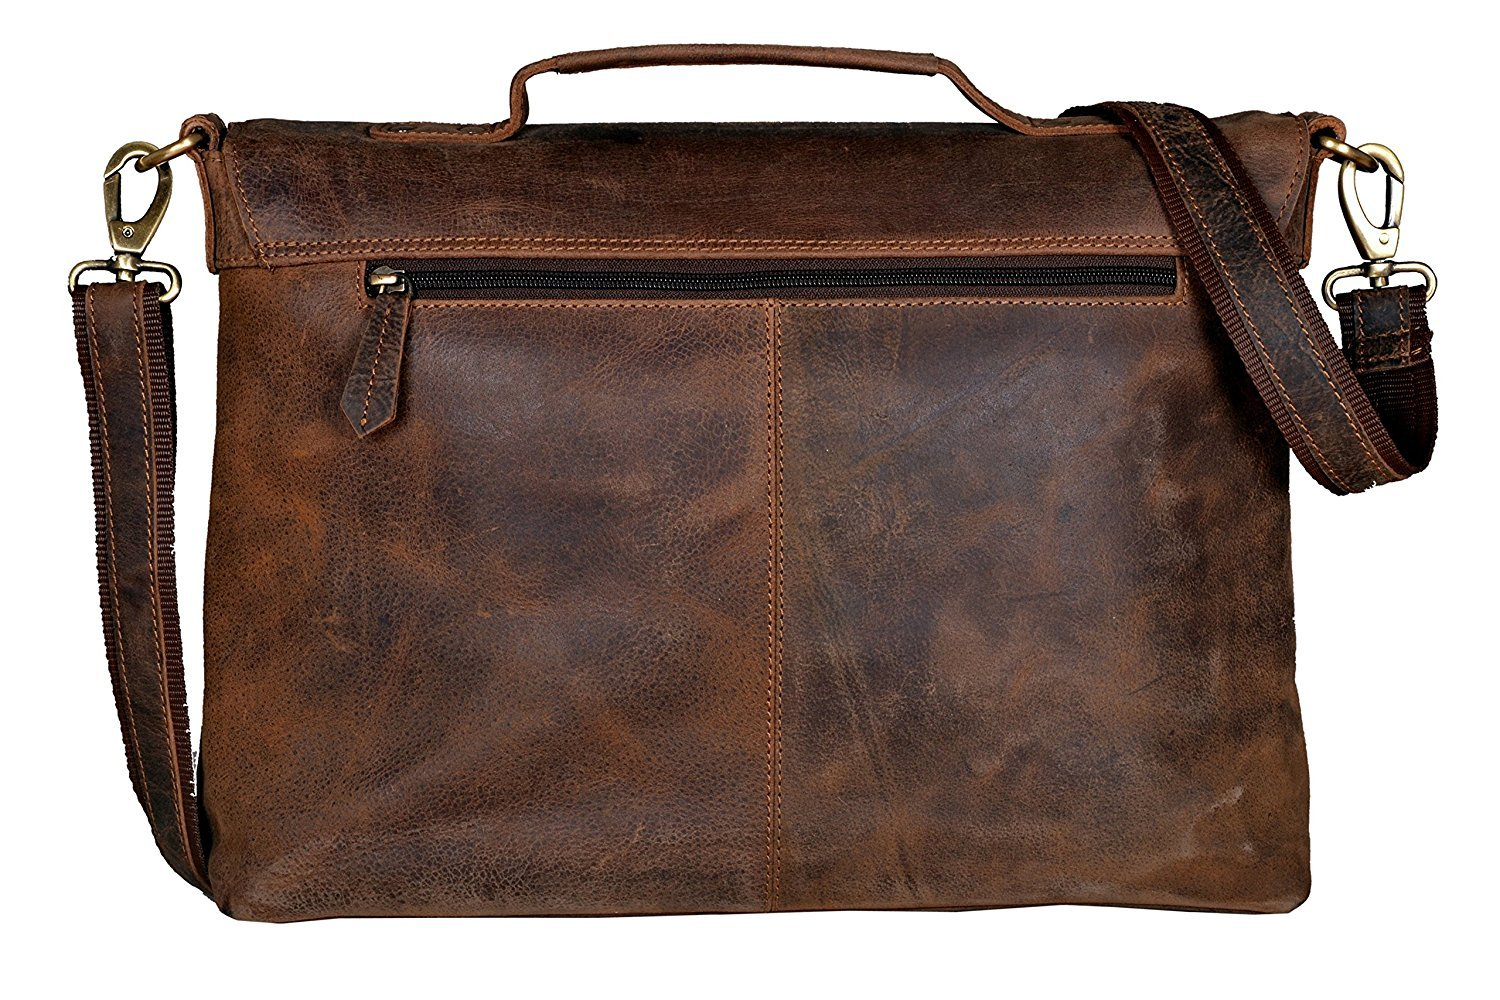 0a650cd422b4 Amazon.com  HLC 16 Inch Retro Buffalo Hunter Leather Laptop Messenger Bag  Office Briefcase College Bag  Computers   Accessories